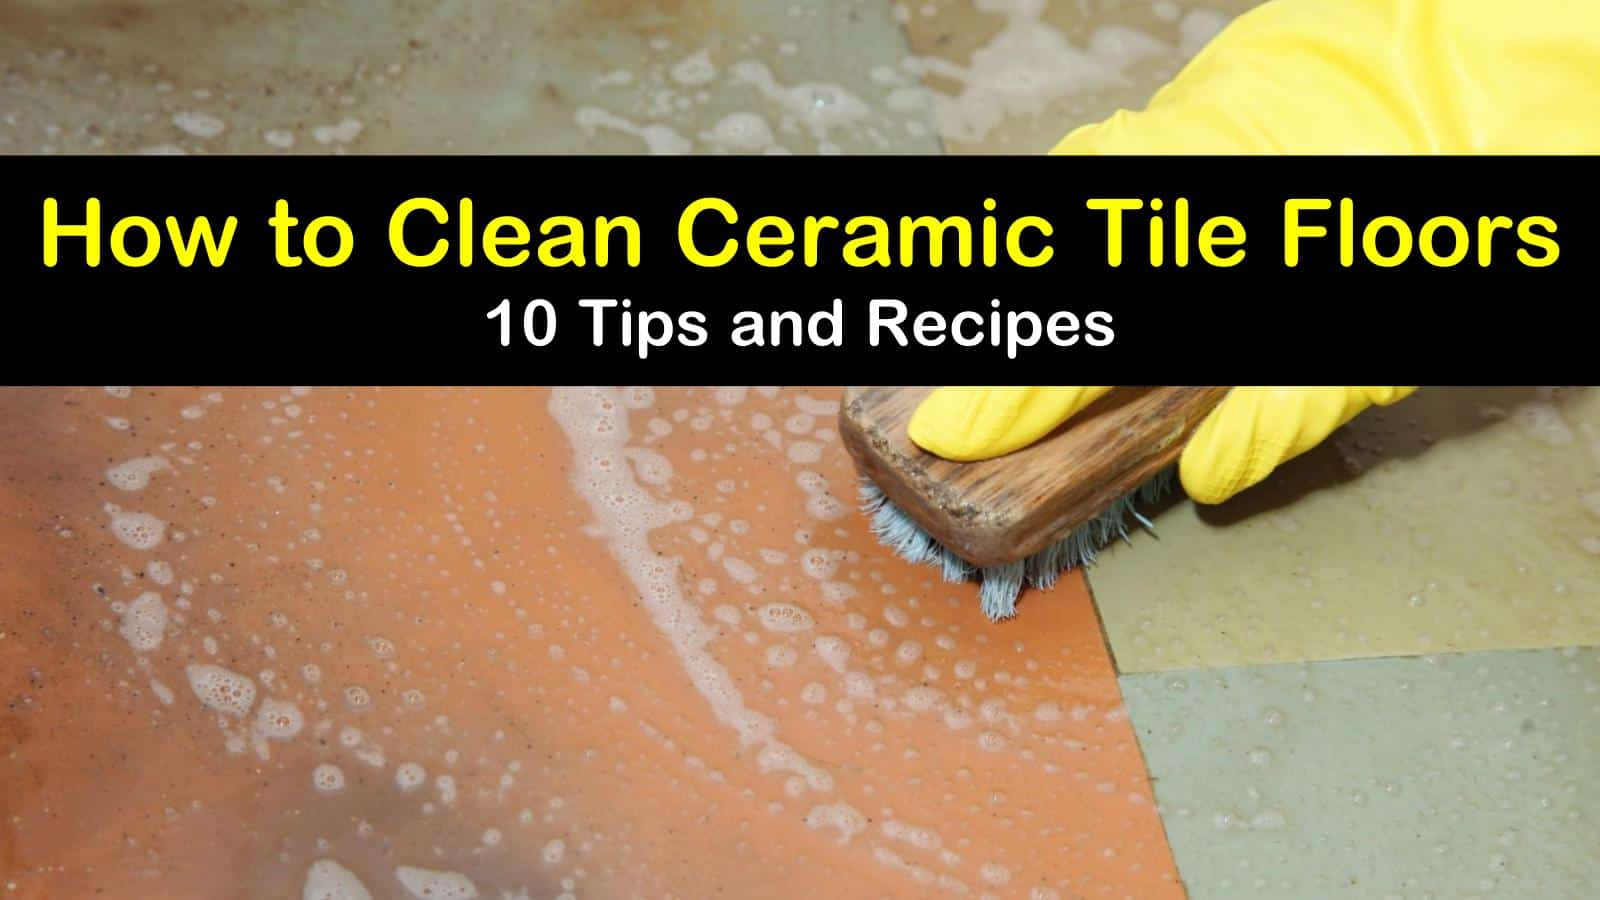 How To Clean Ceramic Tile Floors 10 Tips And Recipes